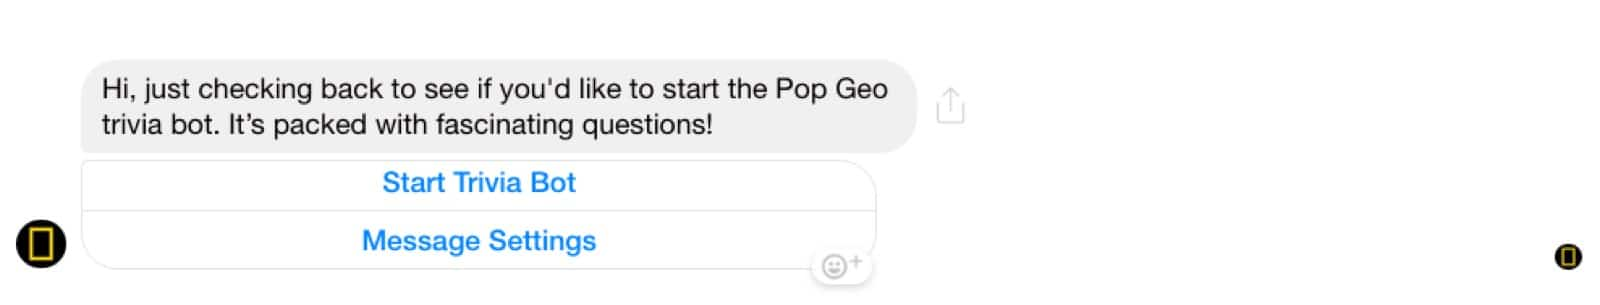 Example of automated follow-up in Messenger